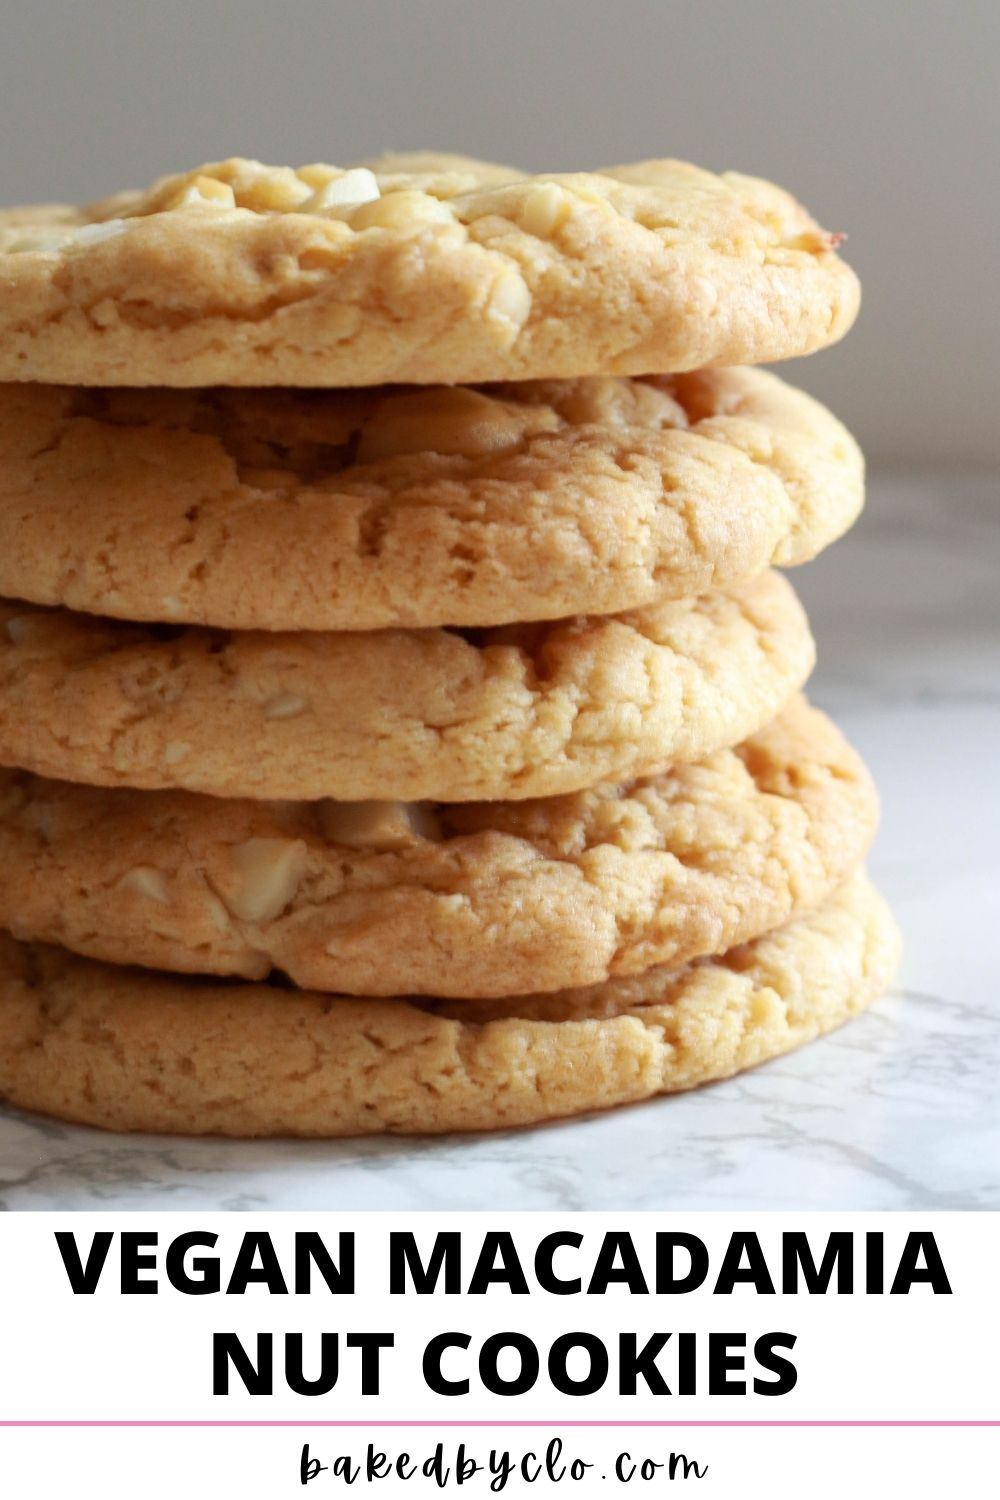 Pinterest Pin- image of stack of 5 cookies